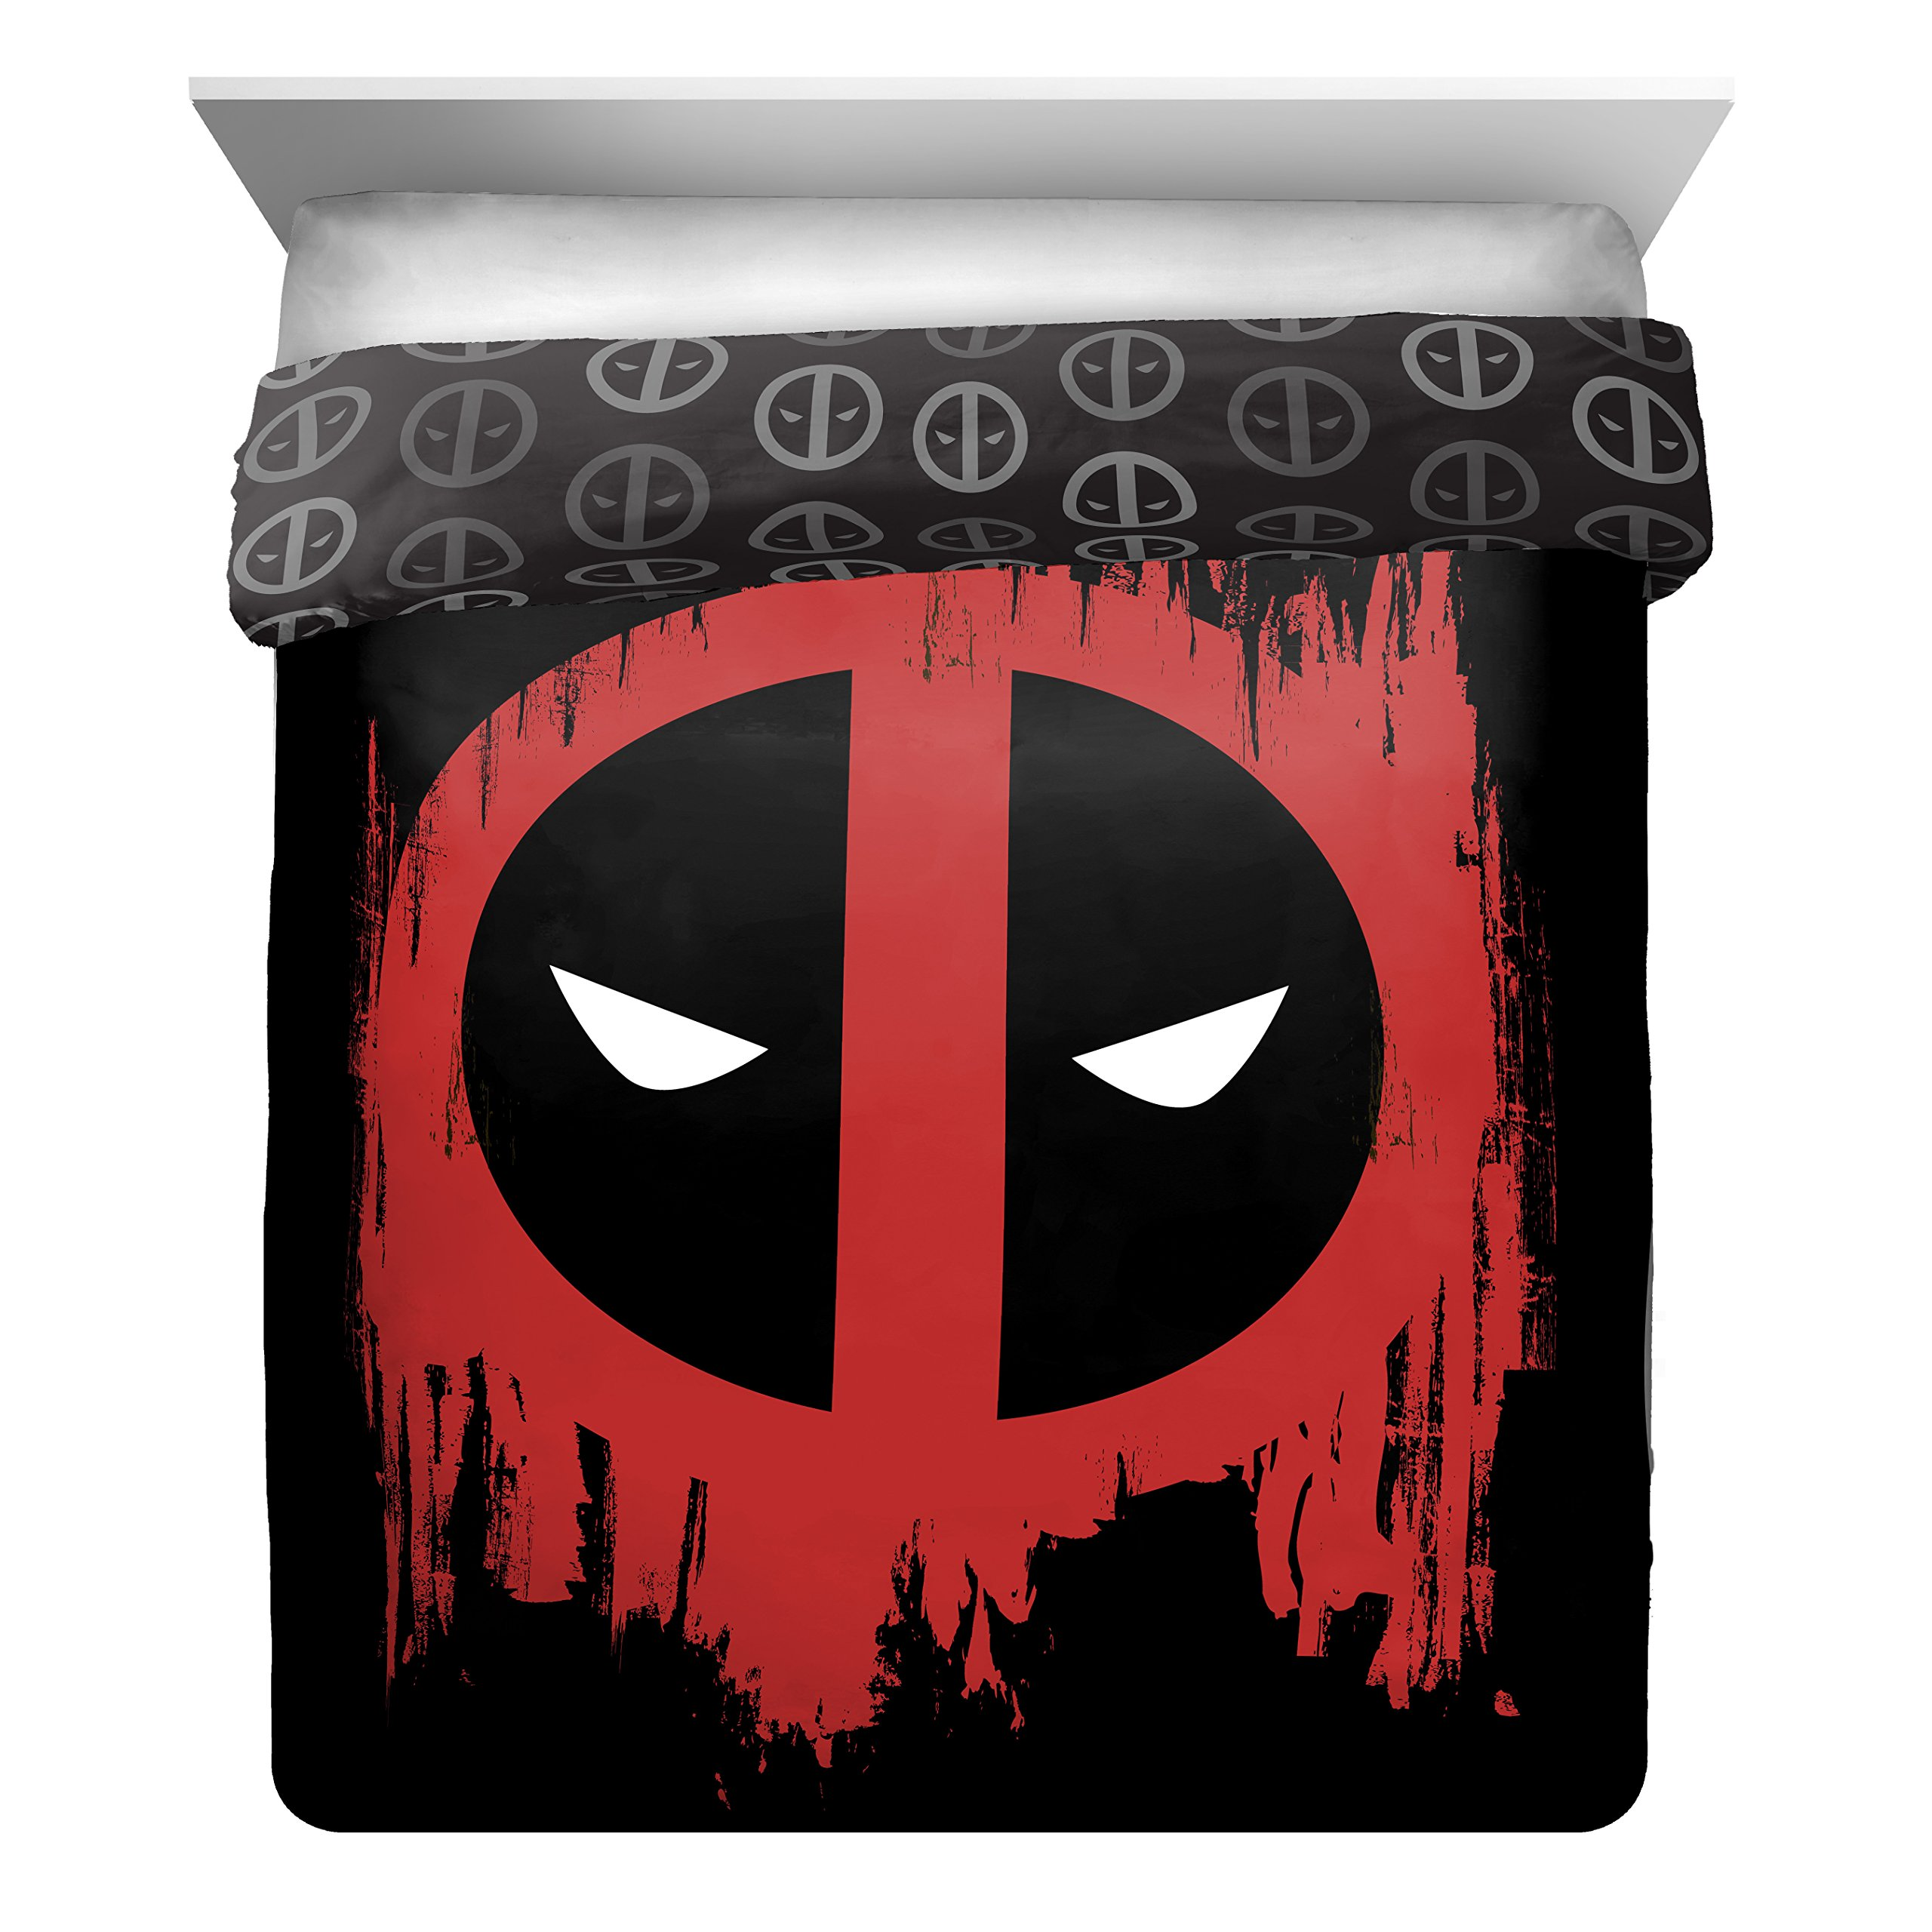 A&L 1 Piece Boys Red Deadpool Invasion Comforter Full Queen, Black Kids Action Superhero Themed Bedding American Super Hero Film Based Comics Titan Hero Series Movie Character Pattern, Polyester by A&L